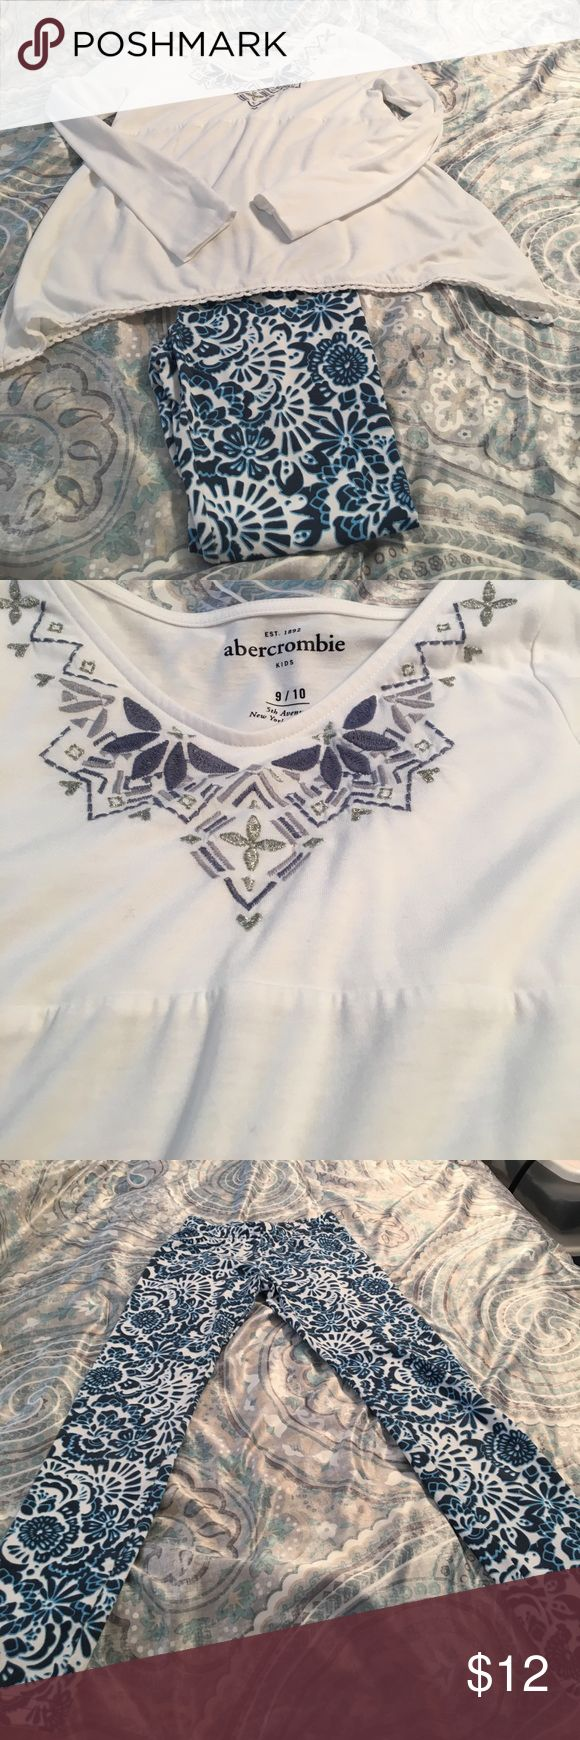 Abercrombie Kids outfit Abercrombie Kids tunic and leggings. Size 9/10. abercrombie kids Matching Sets